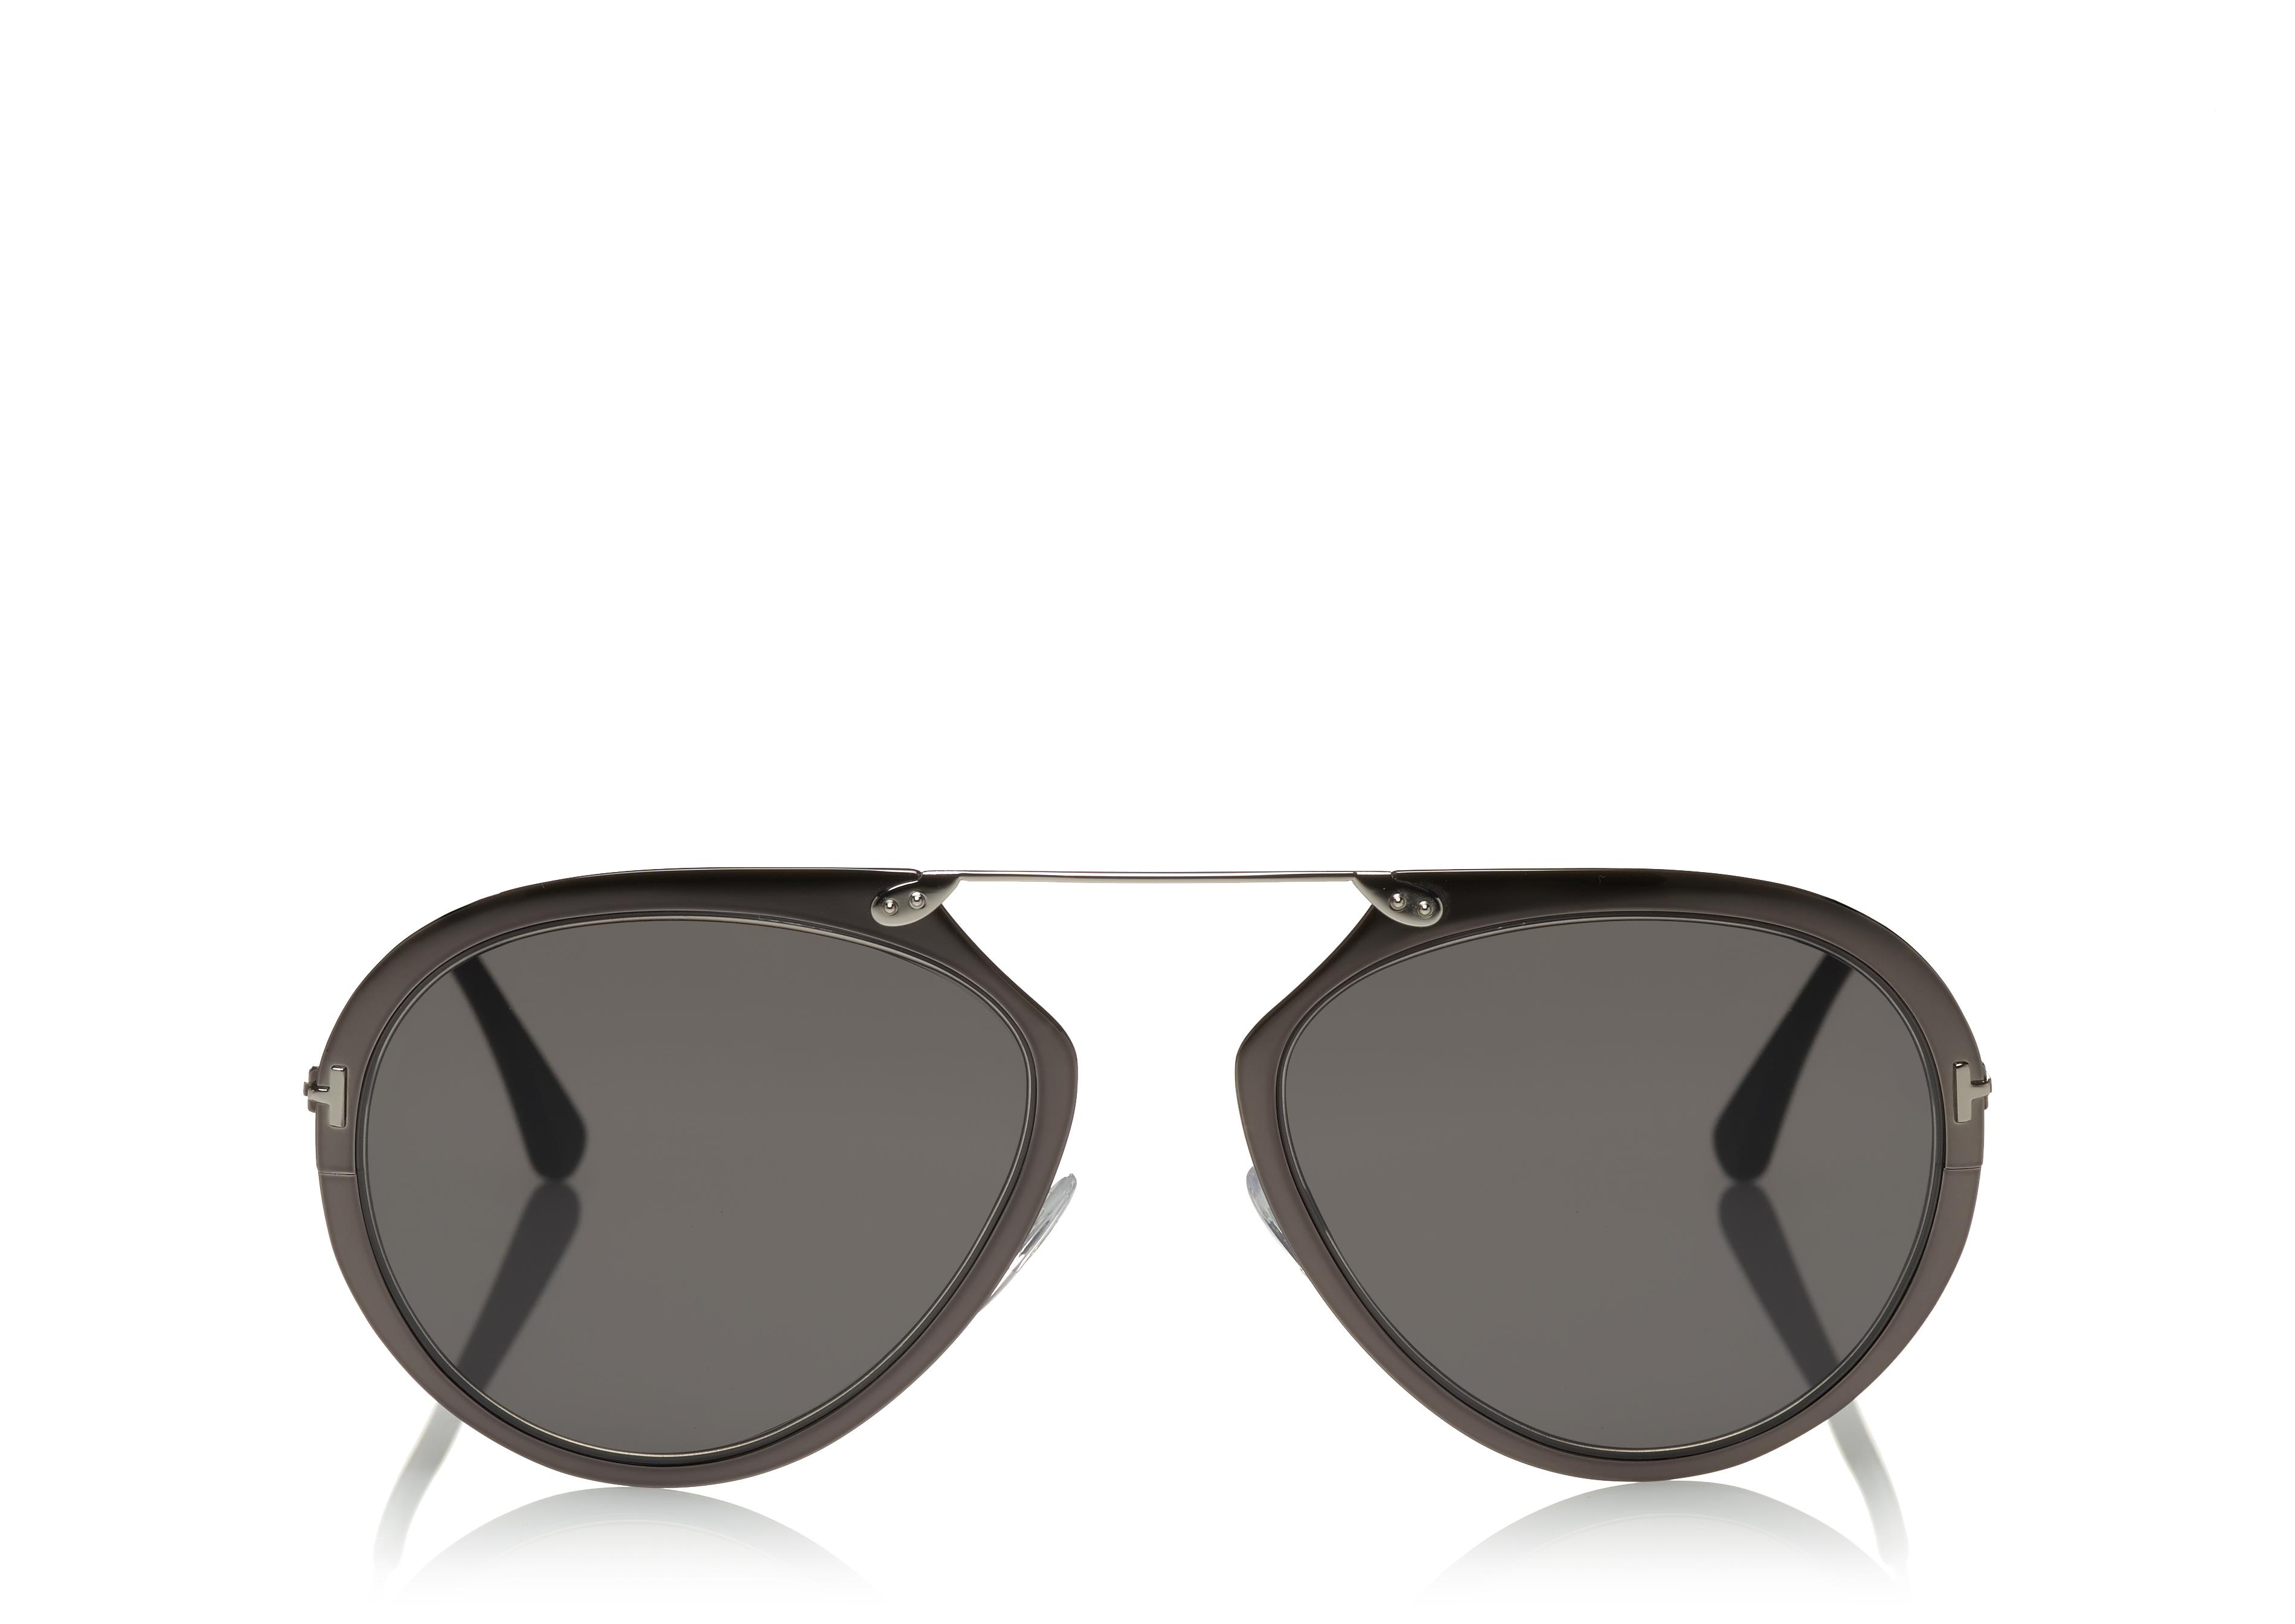 DASHEL SUNGLASSES A thumbnail